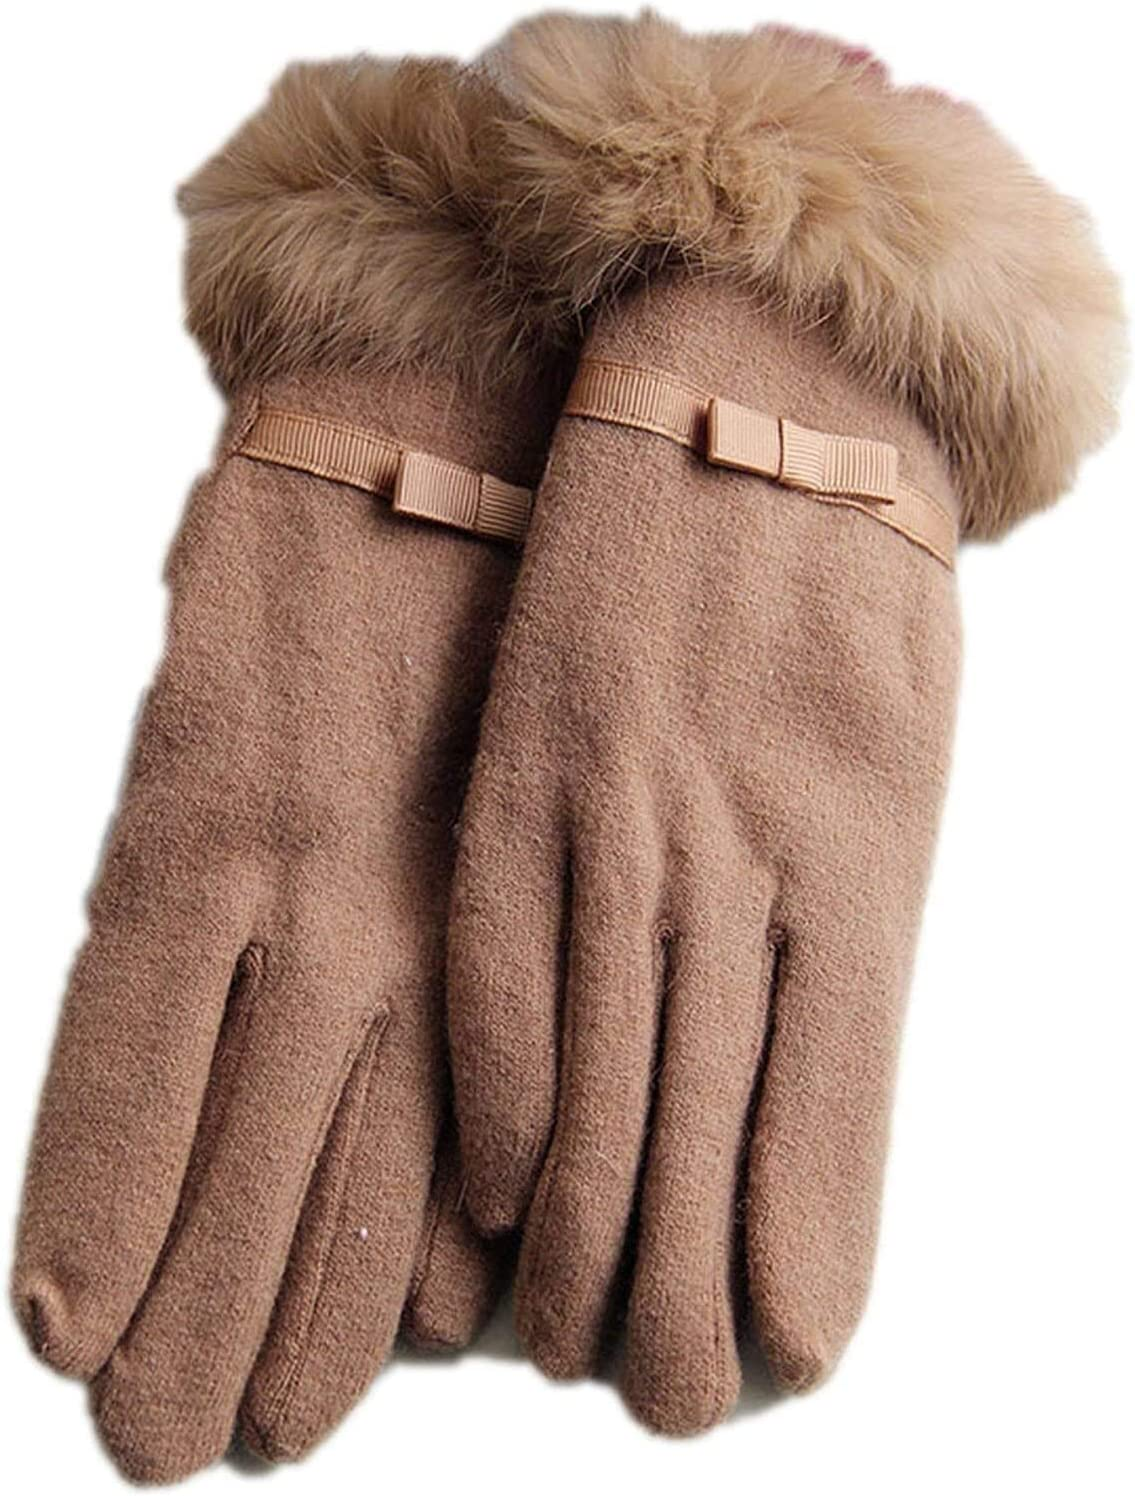 Samantha Warm Gloves Female Touch Screen Gloves Winter Women Double Thick Warm Cashmere Full Finger Rabbit Hair Bow Driving Gloves (Color : Light Tan, Size : Oneszie)